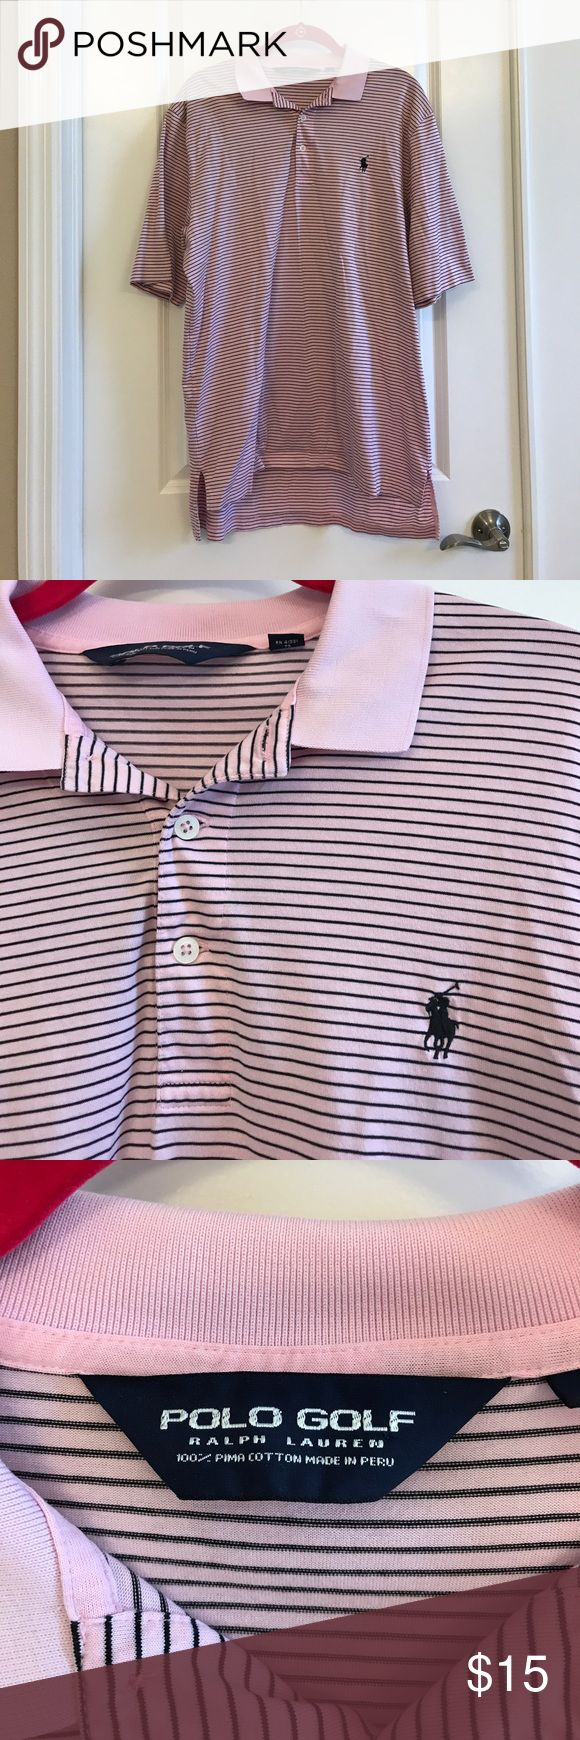 Ralph Lauren Polo Golf Shirt Polo Golf pink and black polo. Black pony. Great shape. Pima cotton, lighter/softer material for the sport. RL Polo Golf is a sponsor for PGA Tour players Justin Thomas and Smylie Kaufman, as well as many others. Fits more like a large. Polo by Ralph Lauren Shirts Polos